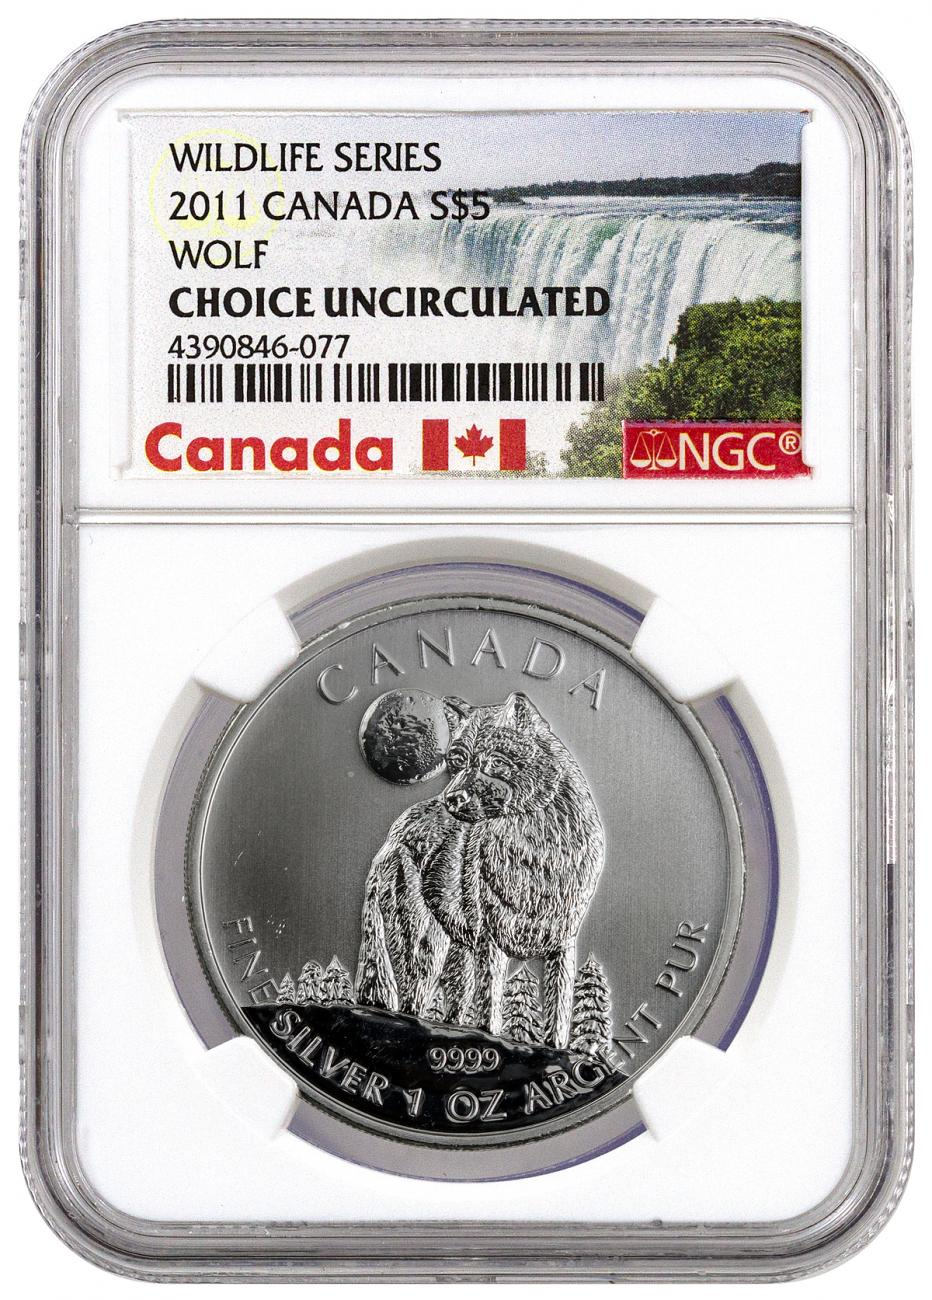 2011 Canada Canadian Wildlife Timber Wolf 1 Oz Silver 5